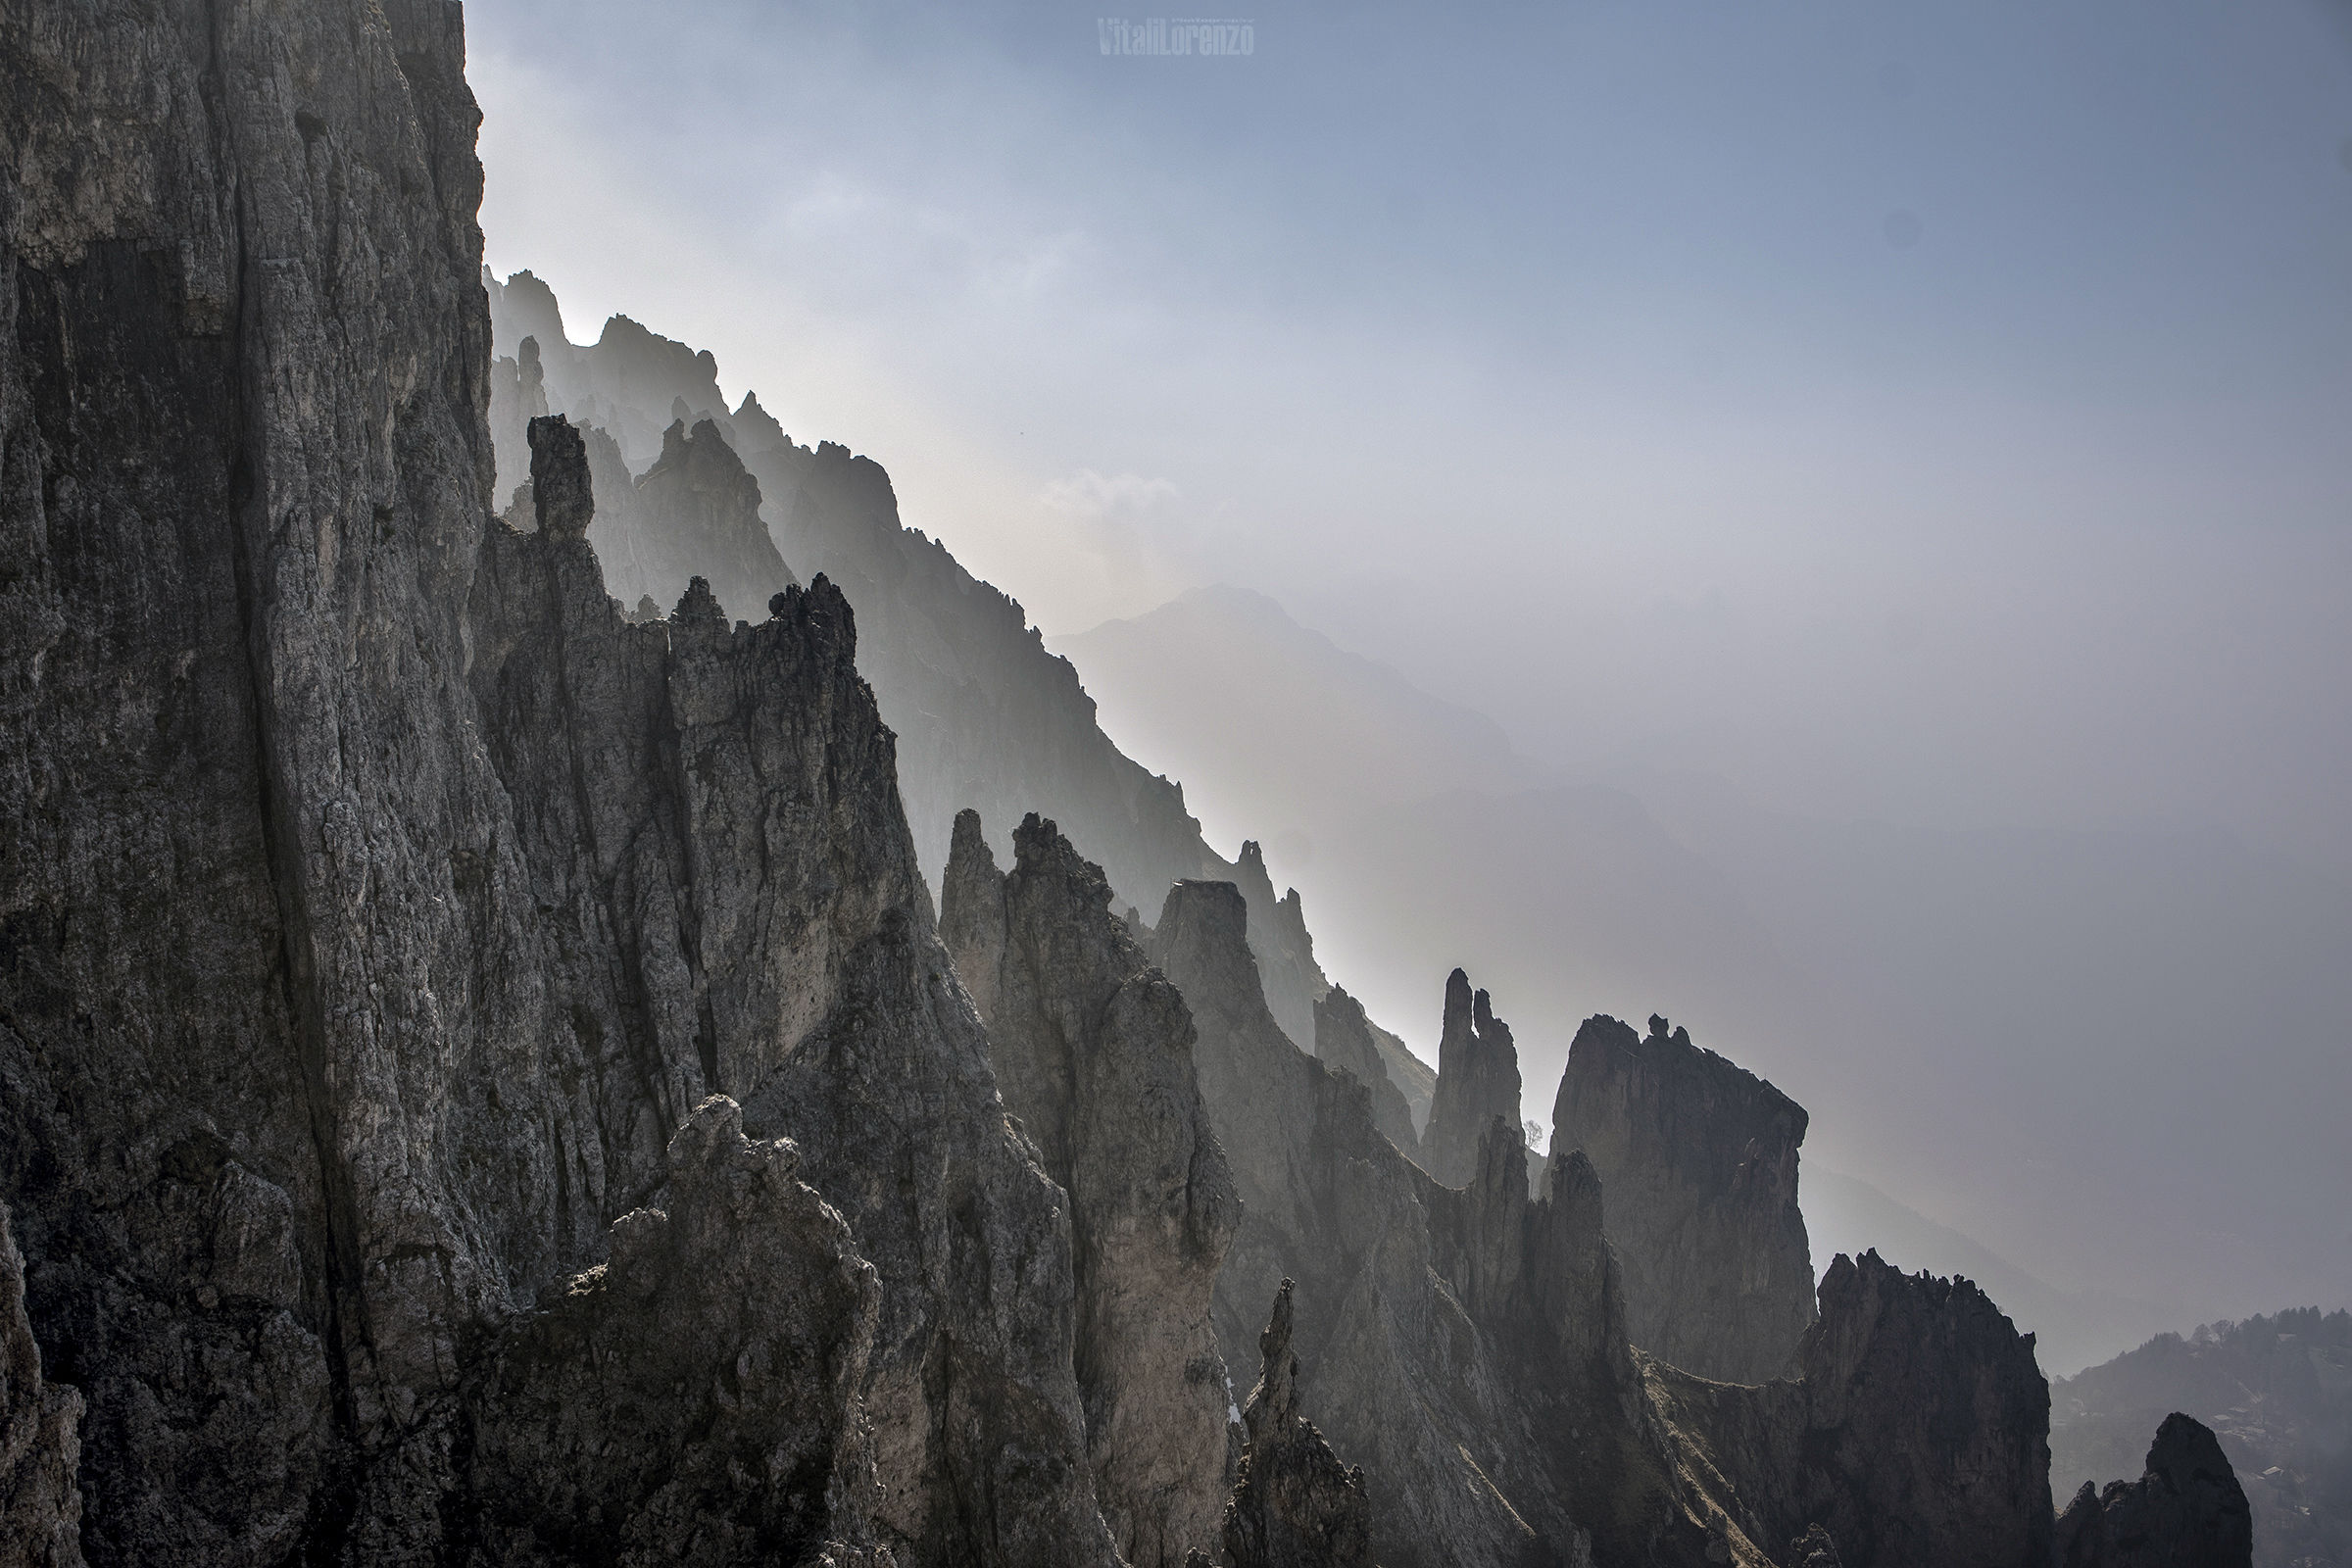 Among the peaks of the Grigna...